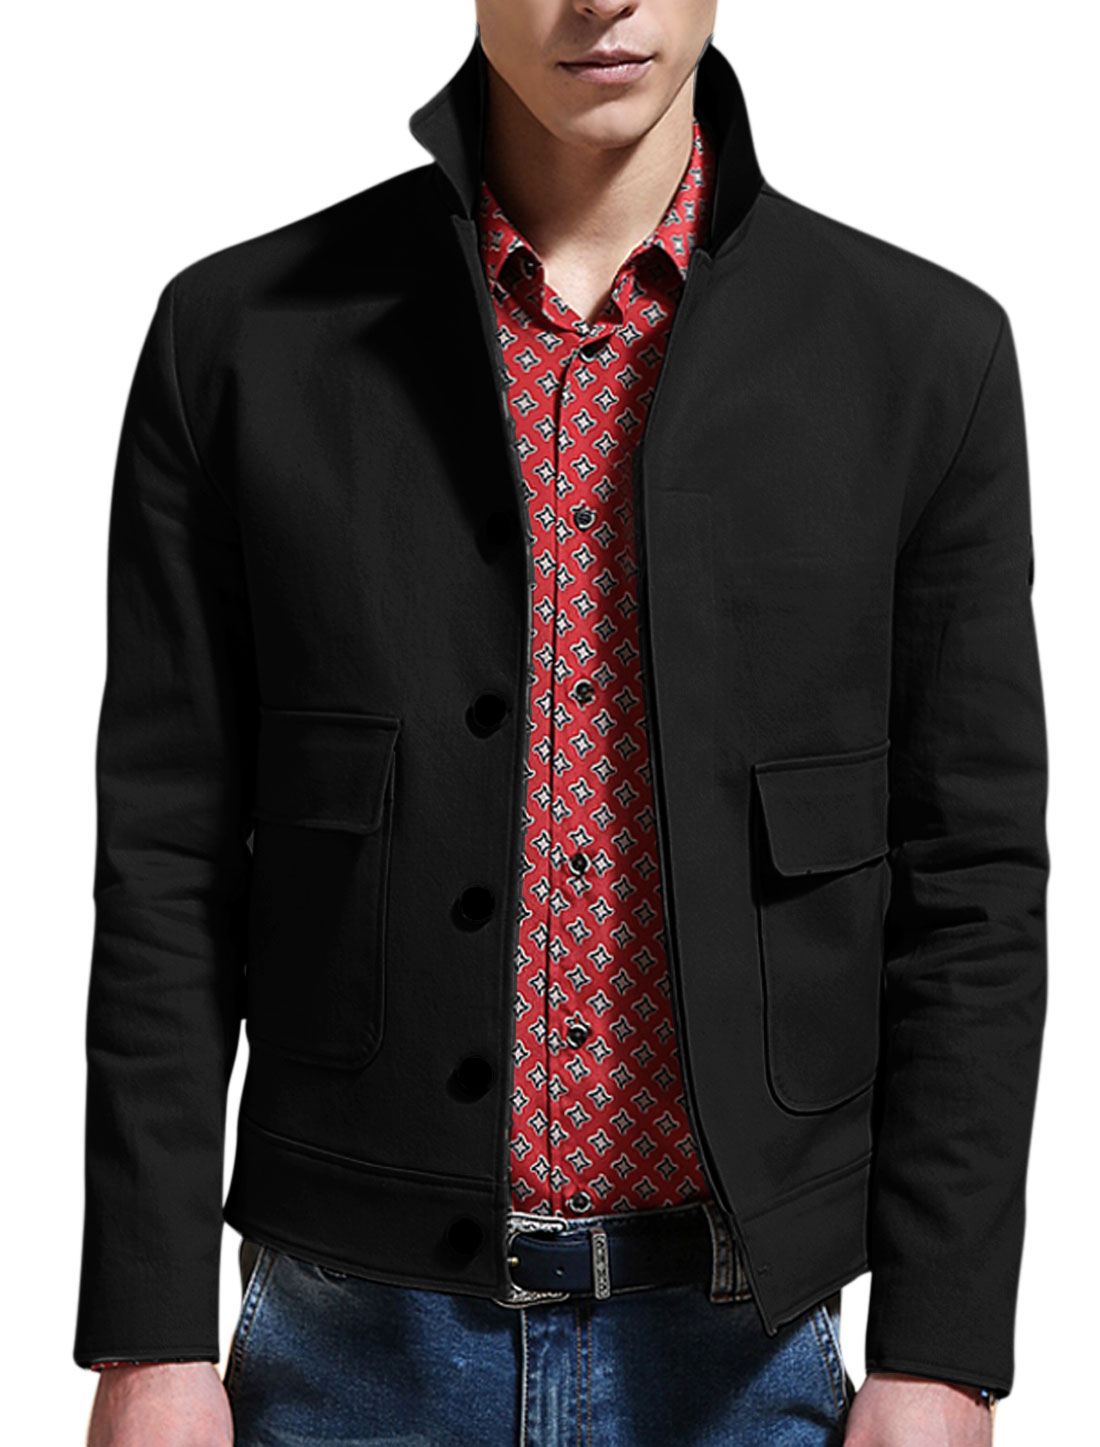 Man Black Point Collar Long Sleeves Single Breasted Casual Jacket M